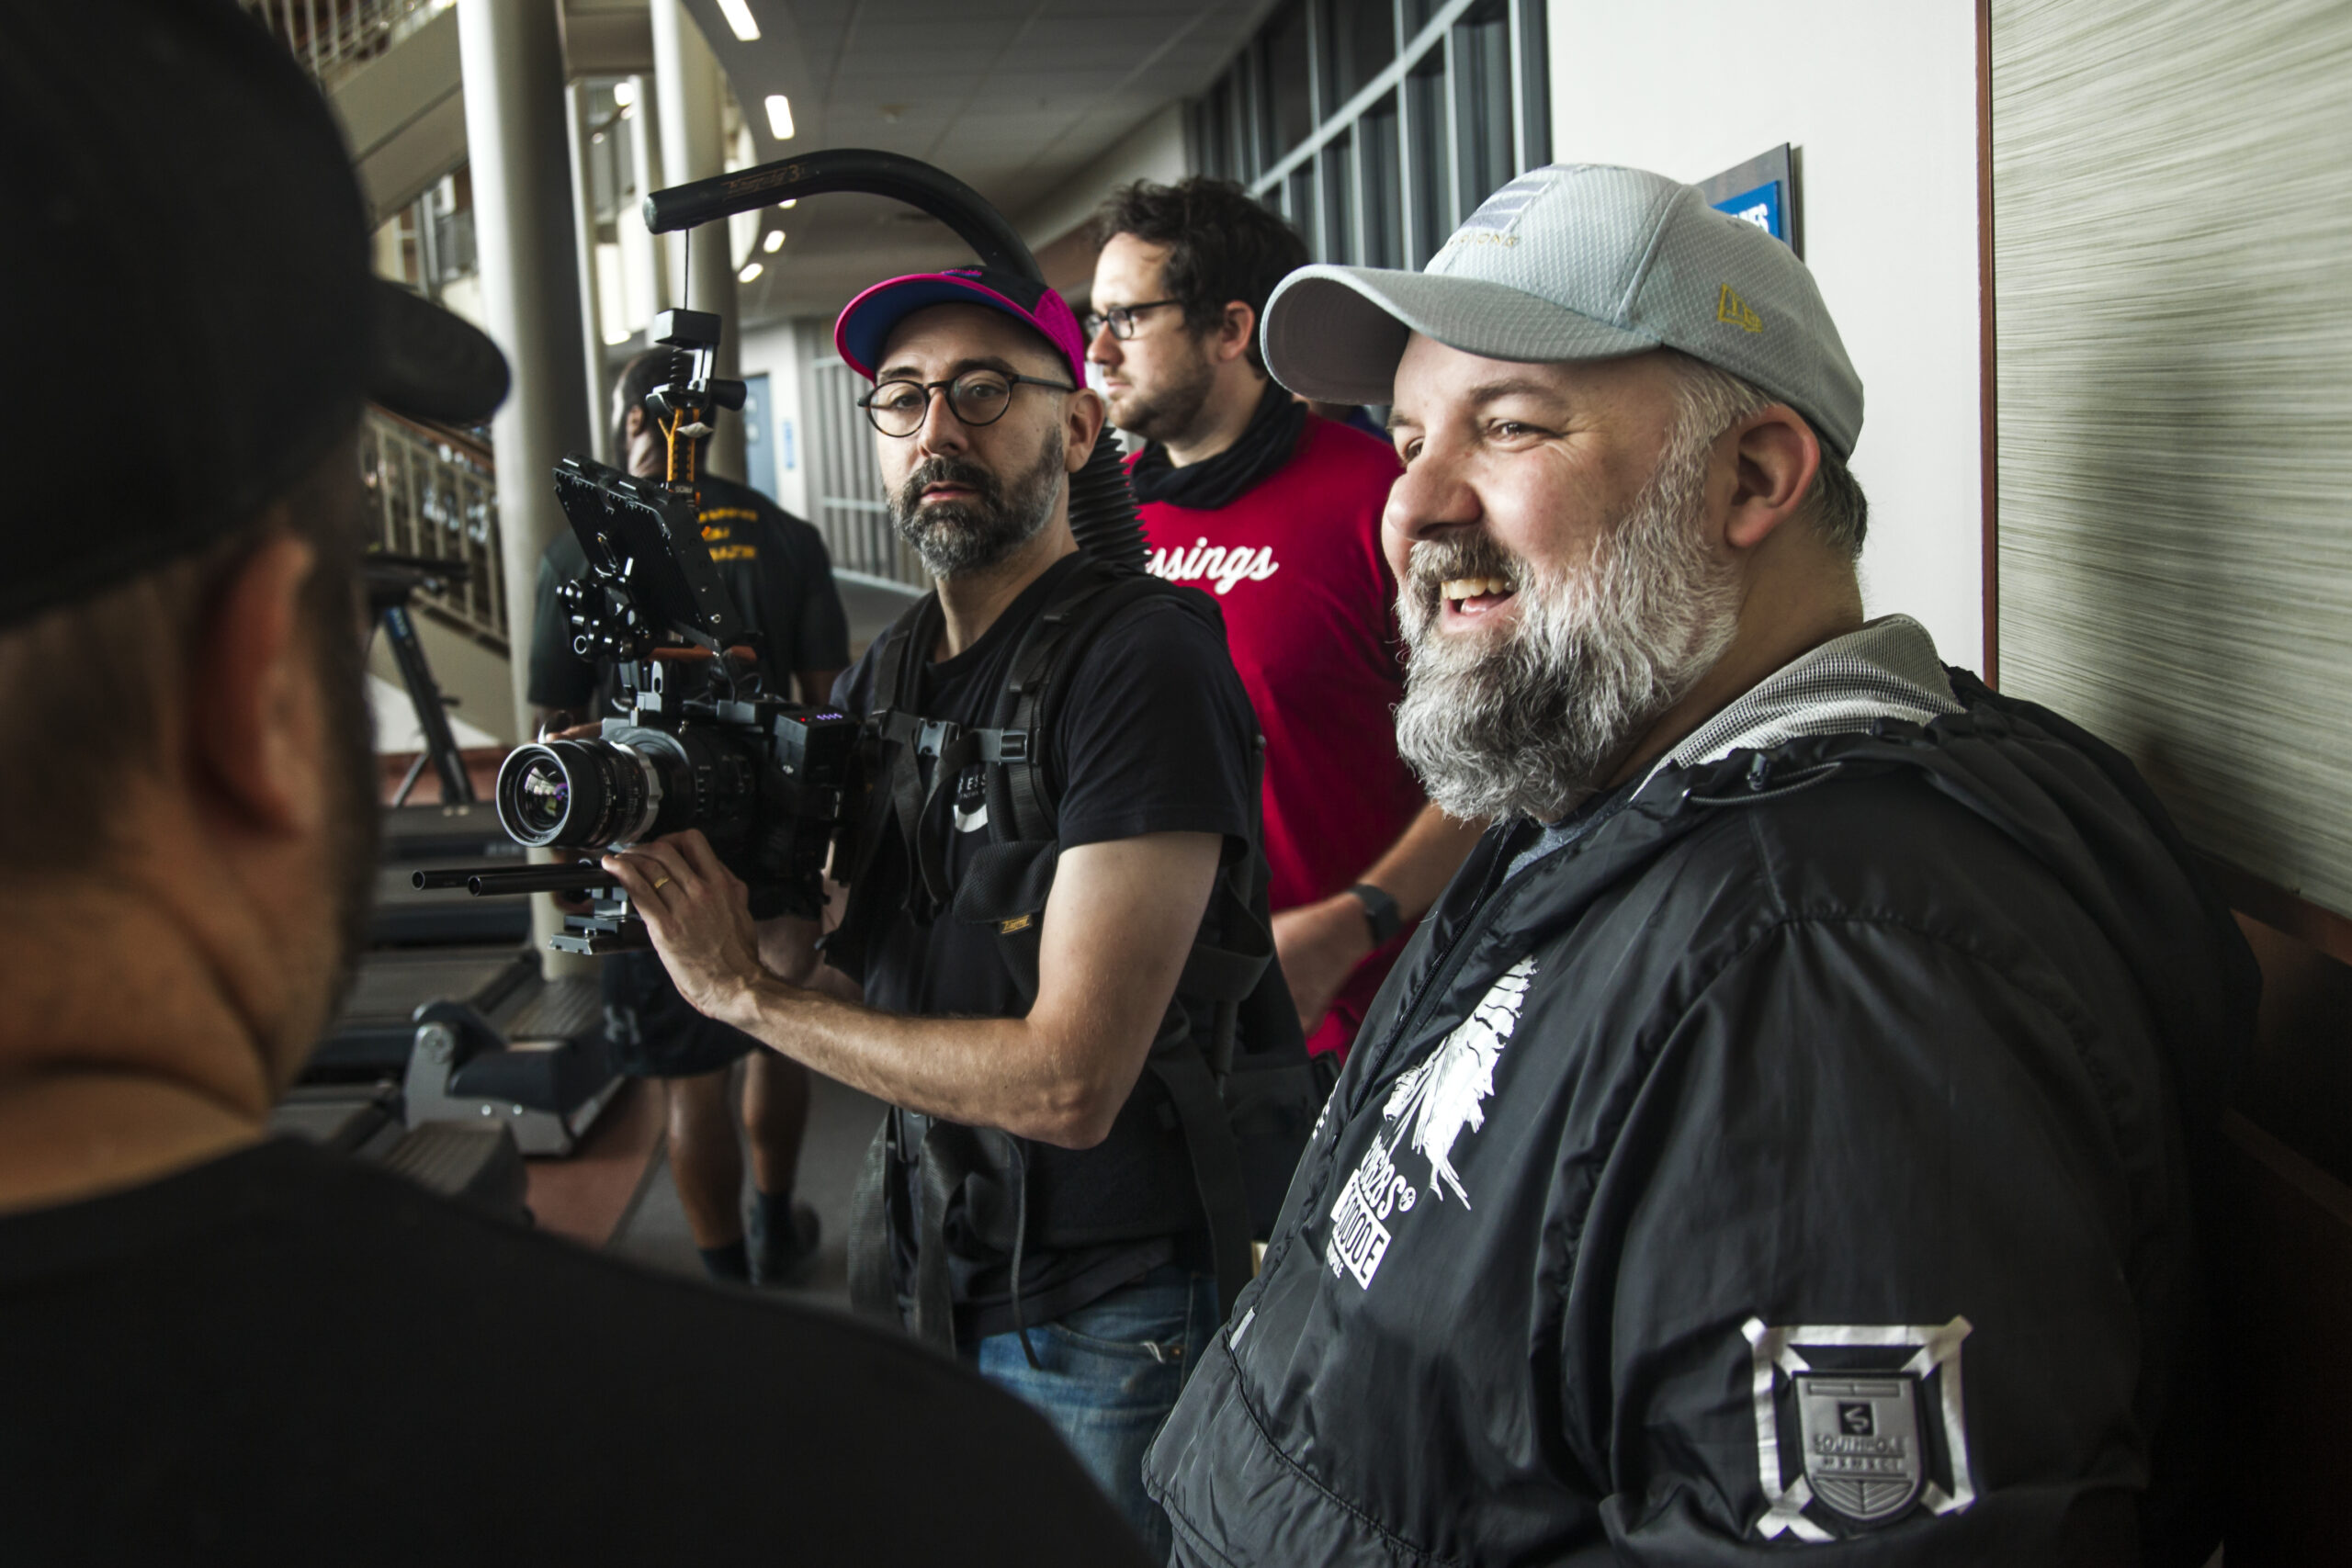 Randy Brewer (far right) talks with film crew Joshua Wann (with camera) and director Nate Corrona (far left) at Craig Ranch Fitness and Spa in McKinney, Texas.